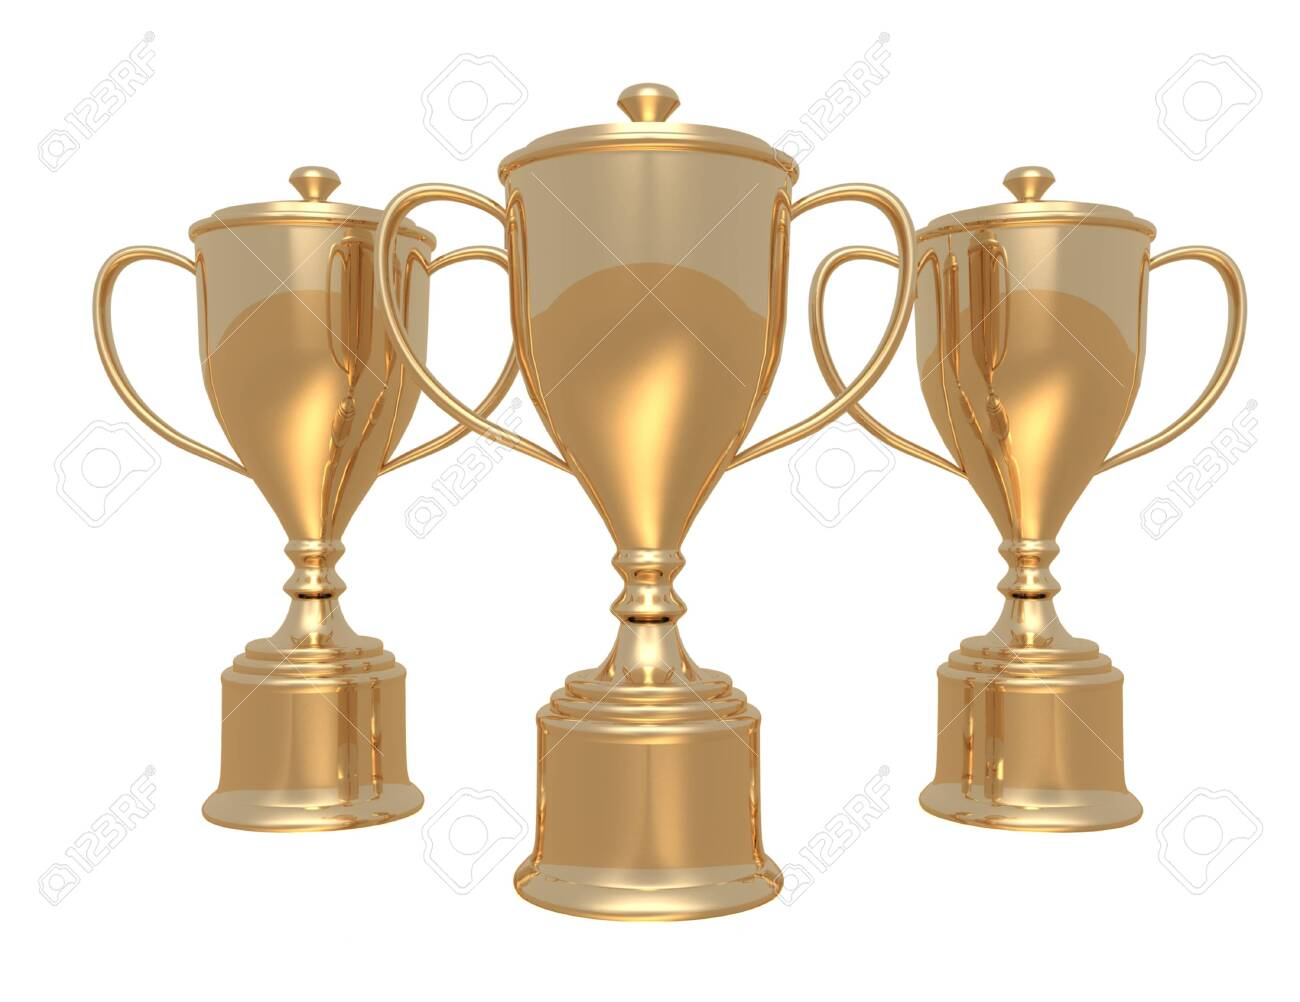 Golden trophy cups on white background - 151780677